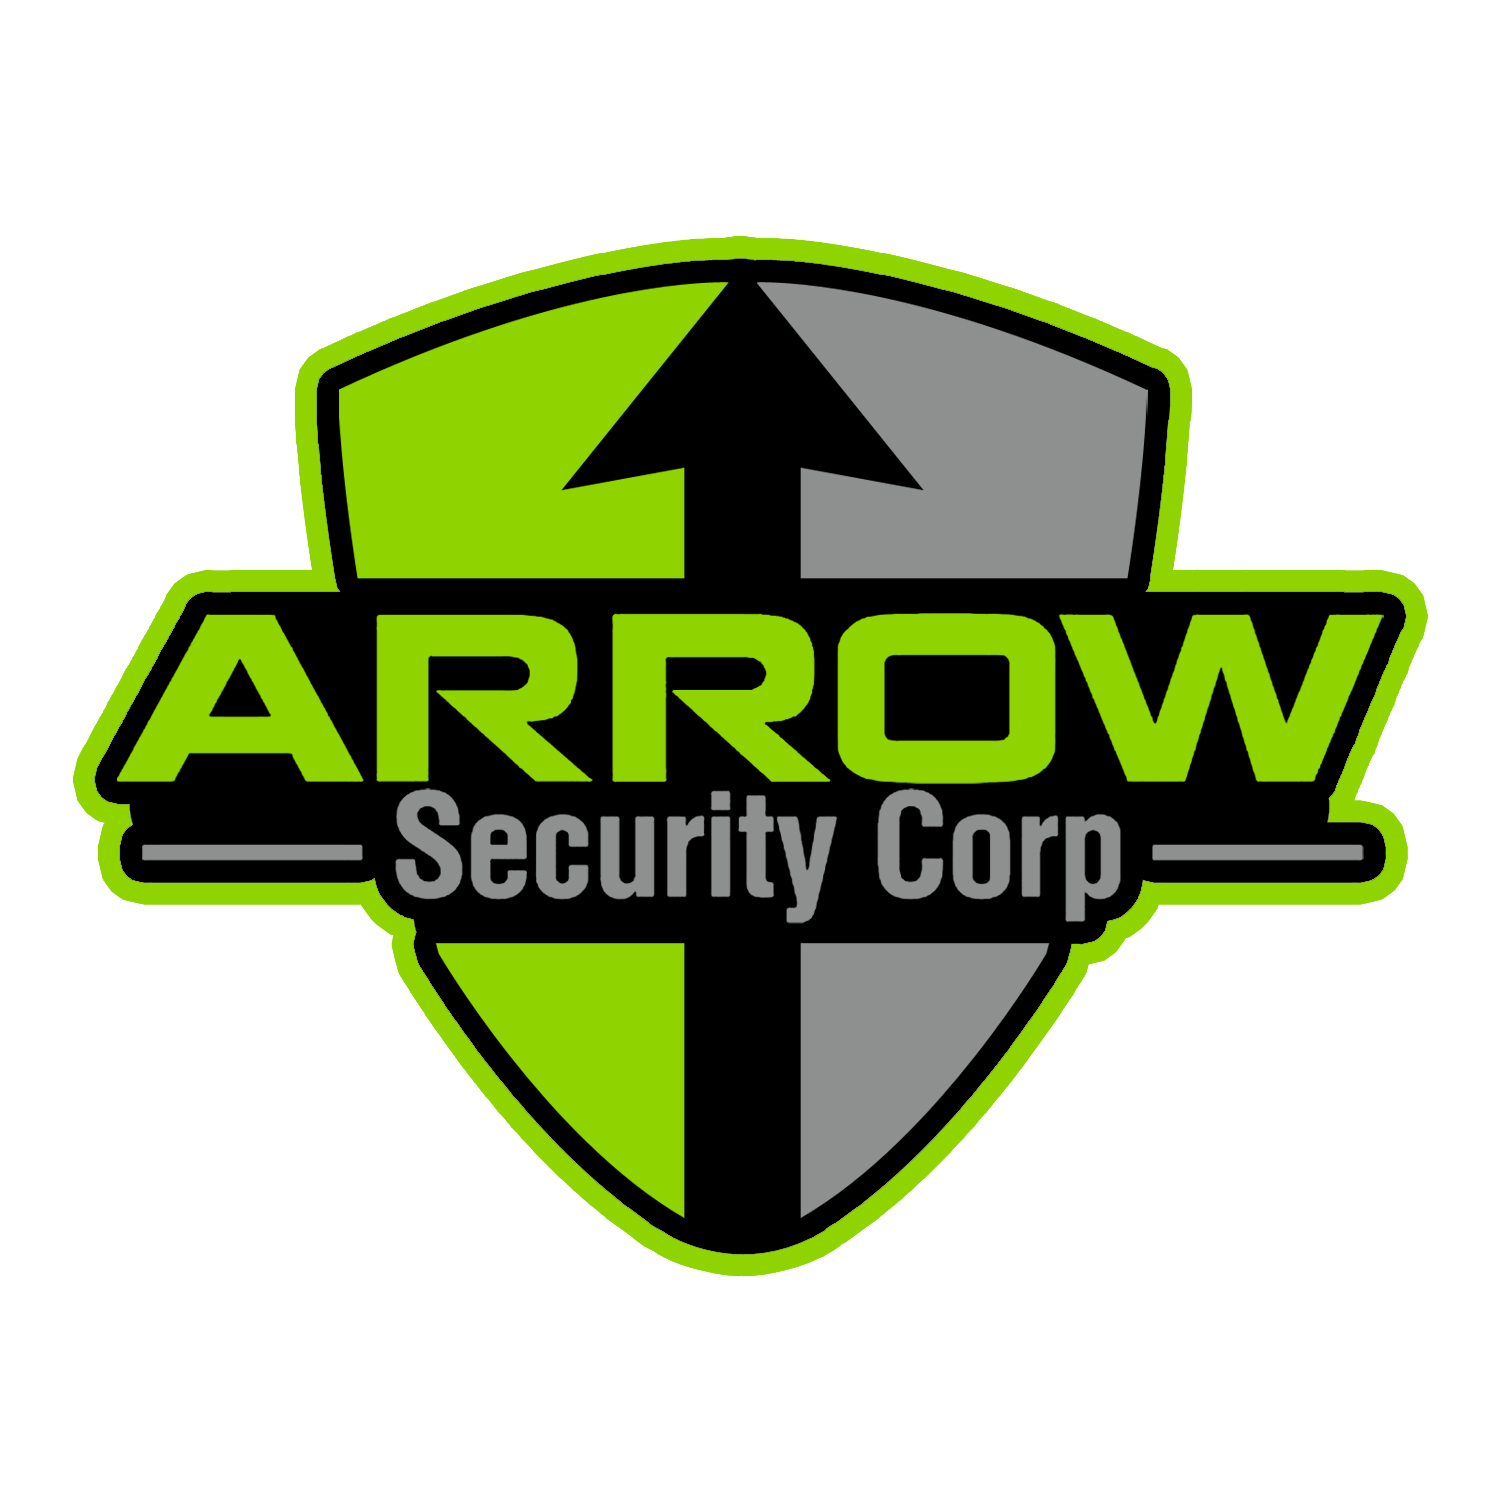 Arrow Security Corp